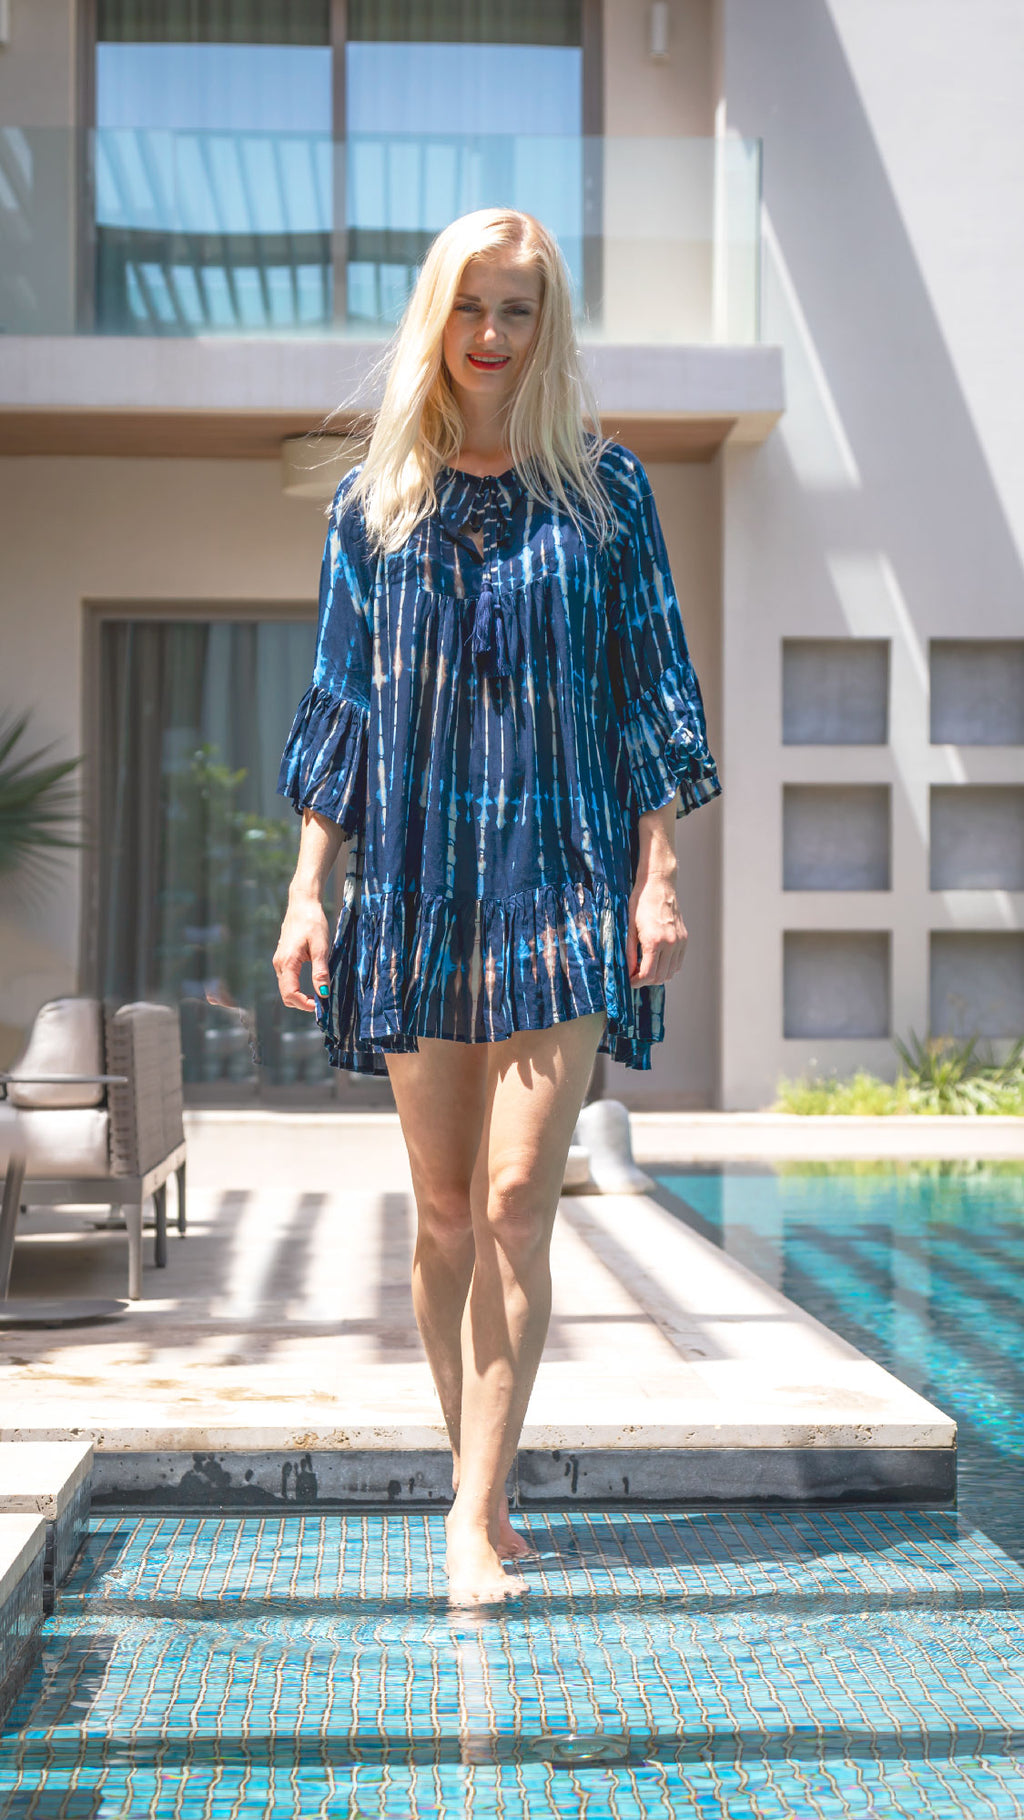 Lovina Loose Cotton Beach Dress in Navy Blue Tie Dye - Kardia